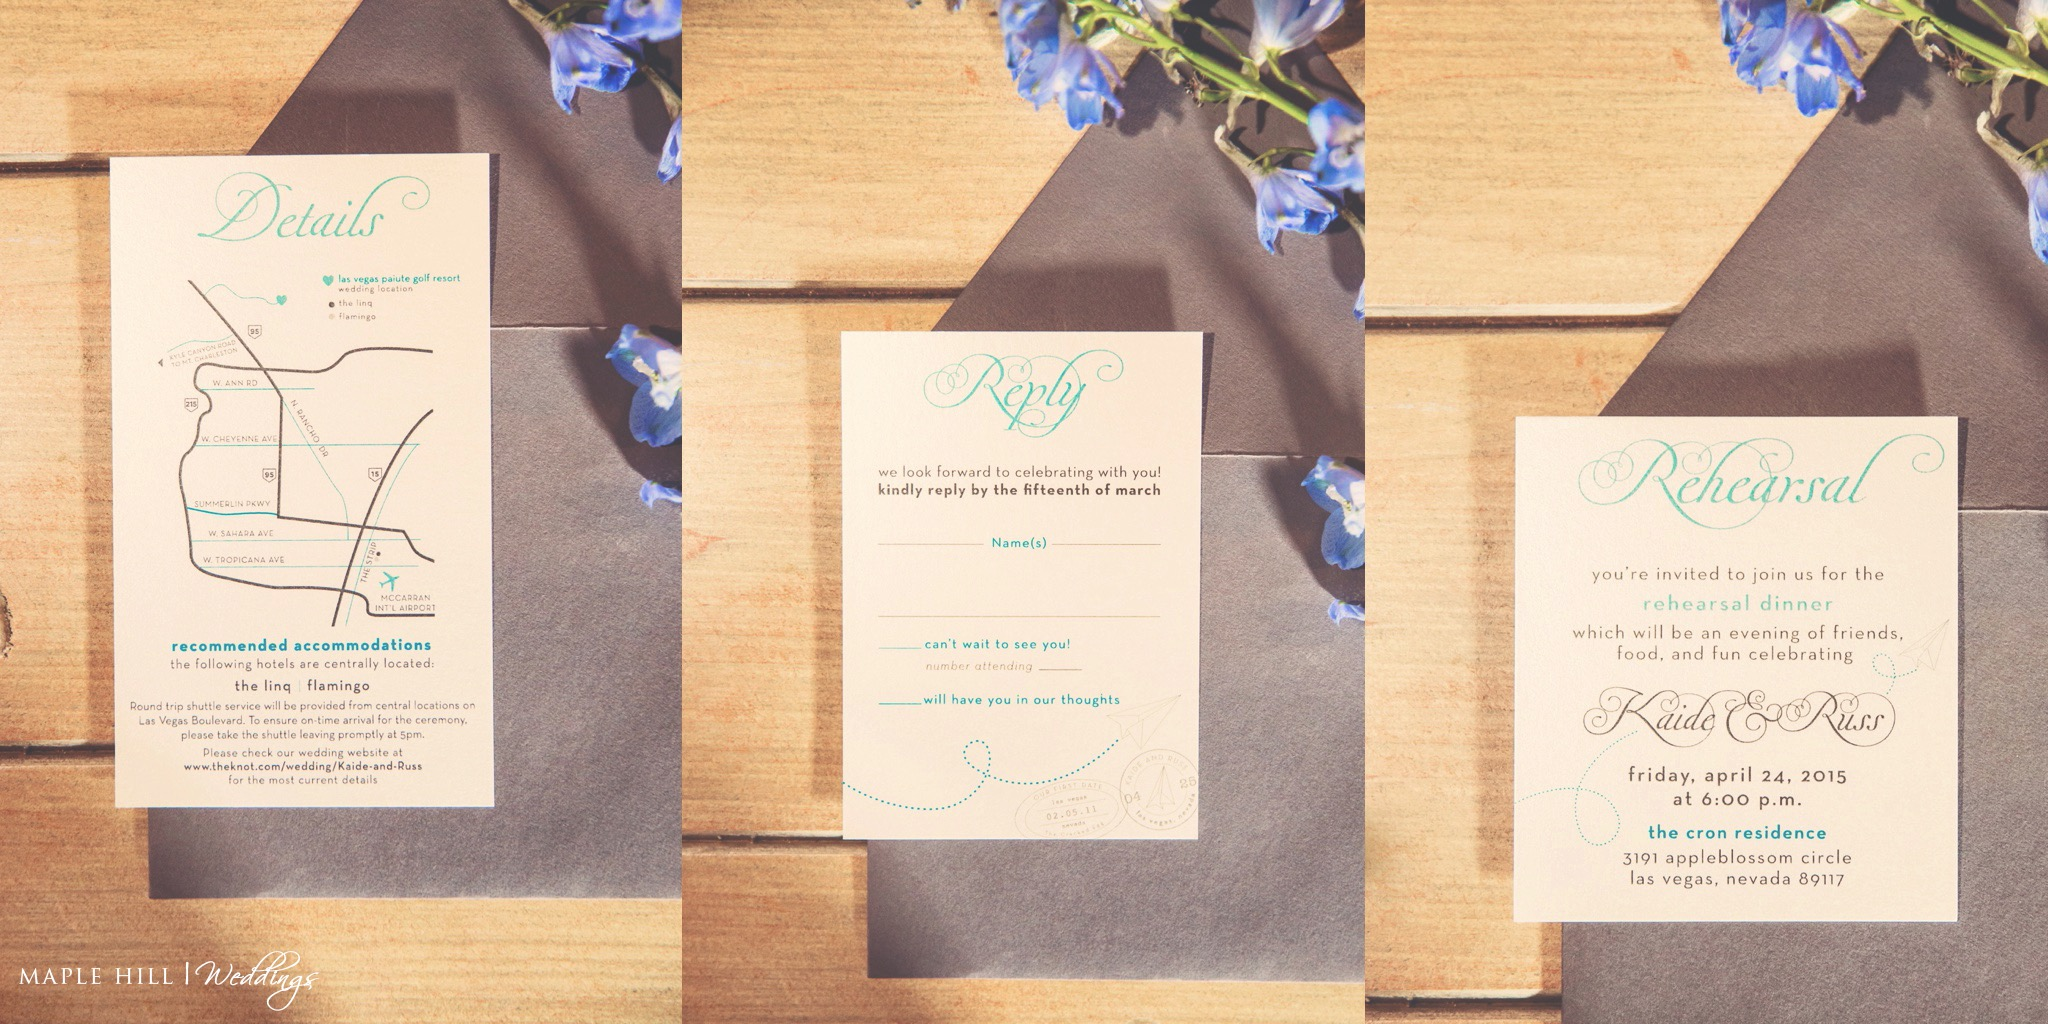 paper airplane wedding invitations kathea and russell wedding invitation paper Paper Airplane Wedding Invitation Details